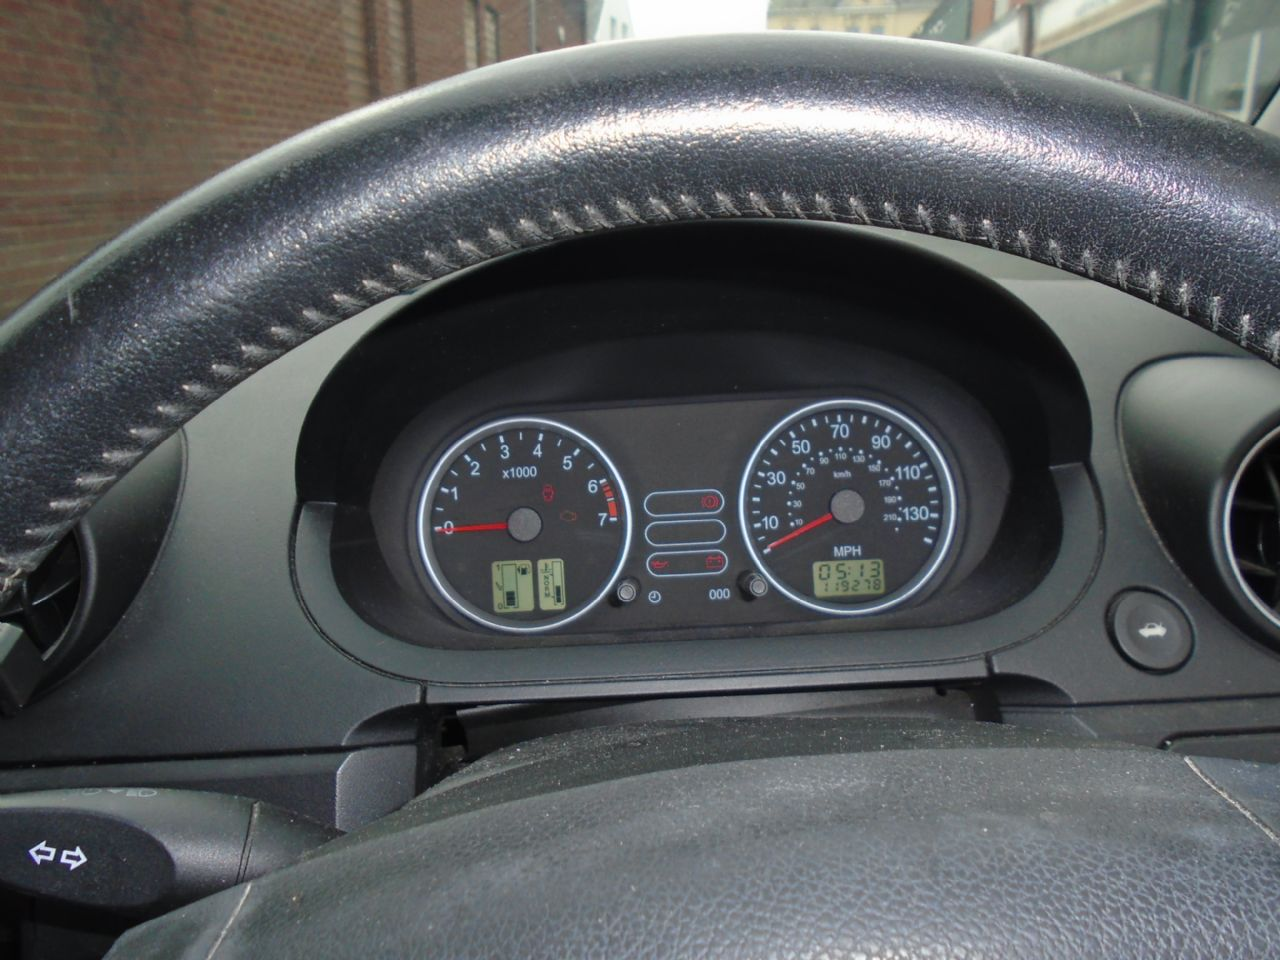 FORD FIESTA 1.4i 16v LX A/C - Picture 7